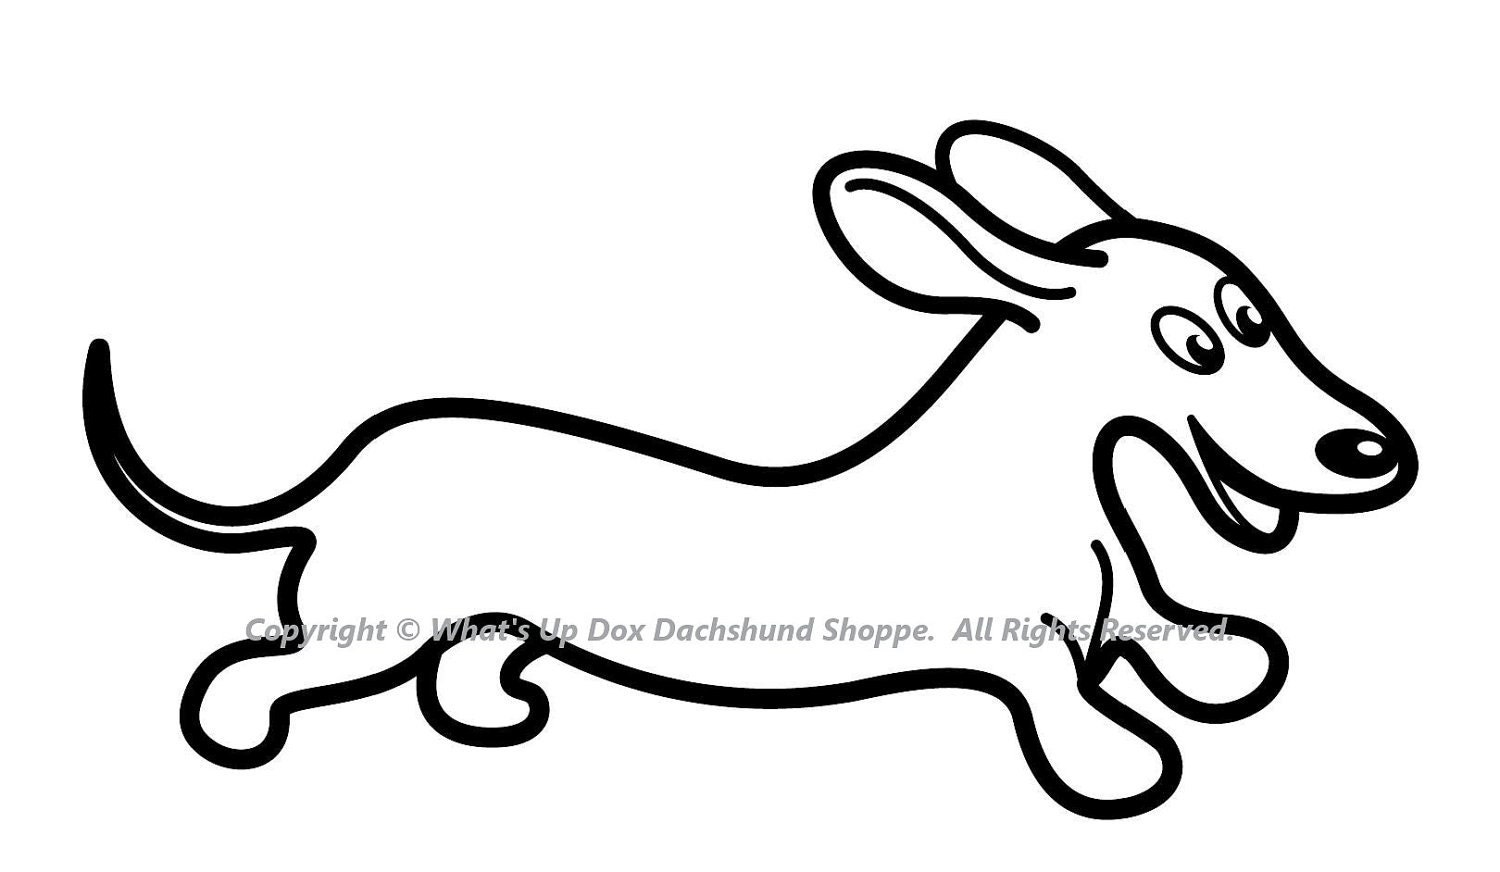 dachshund puppies coloring pages - photo#11